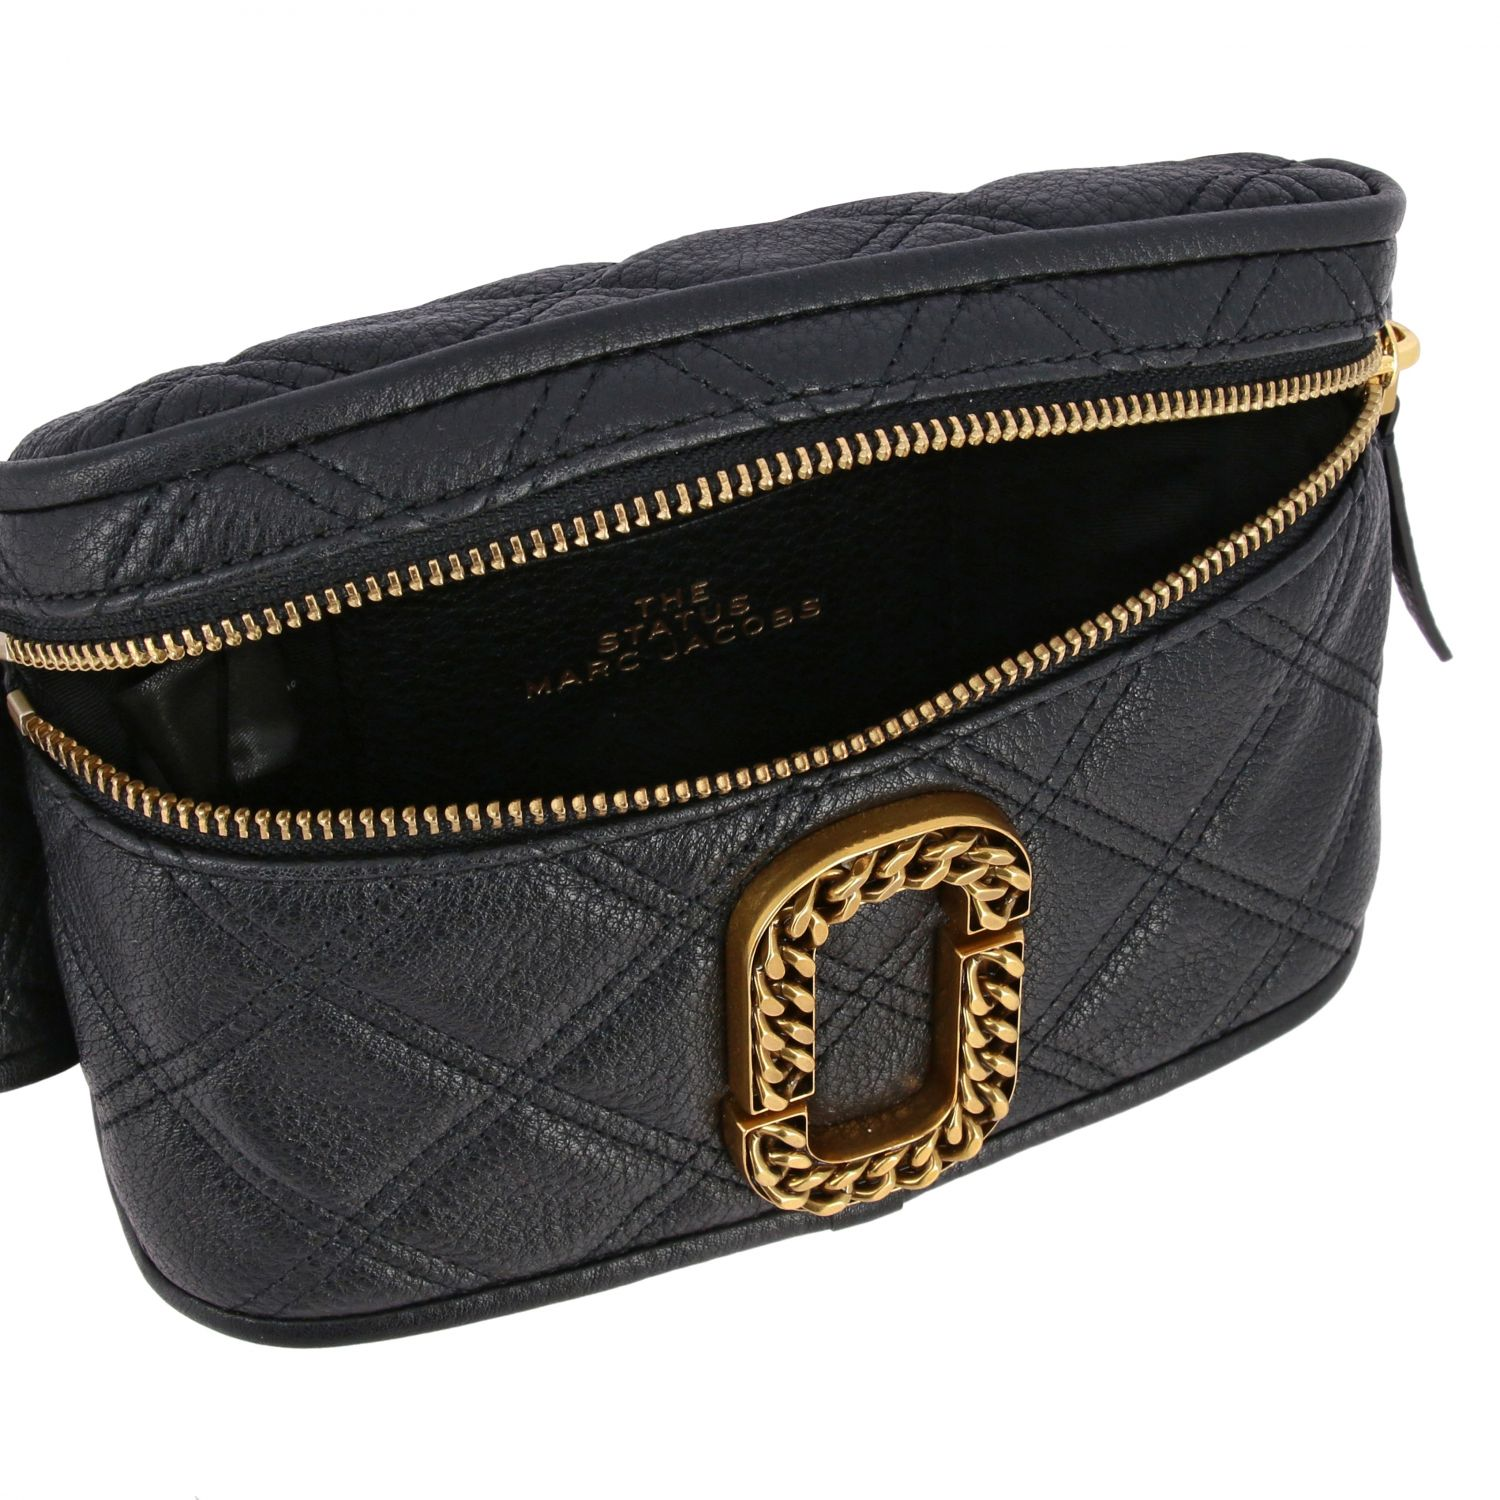 Marc Jacobs belt bag in quilted leather with paperclip black 5